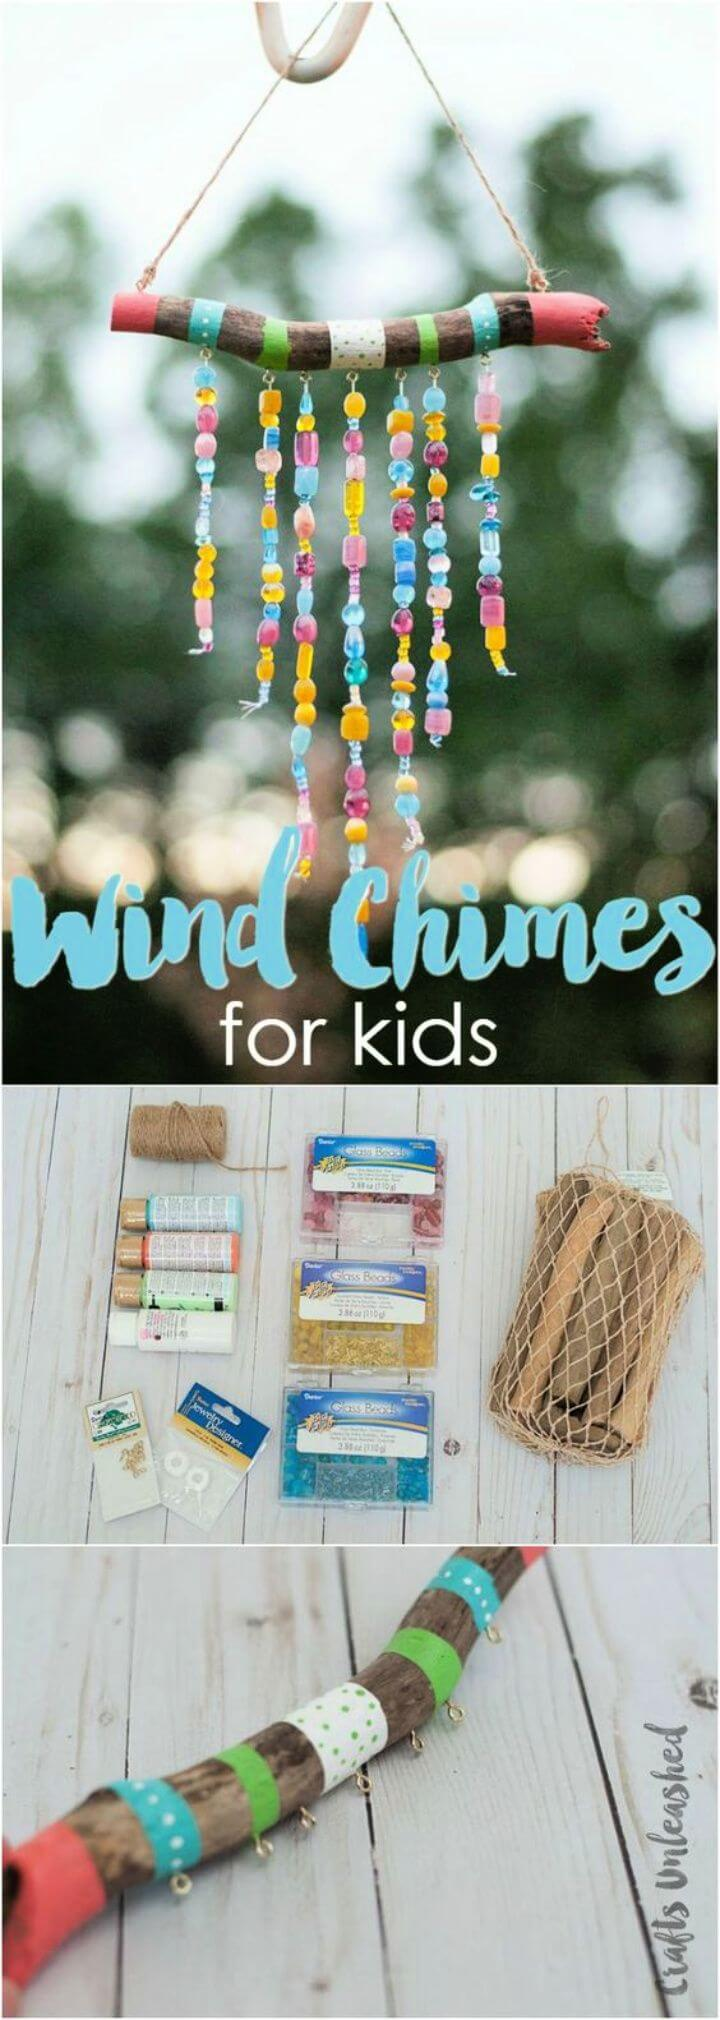 DIY Wind Chimes For Kids Step by Step